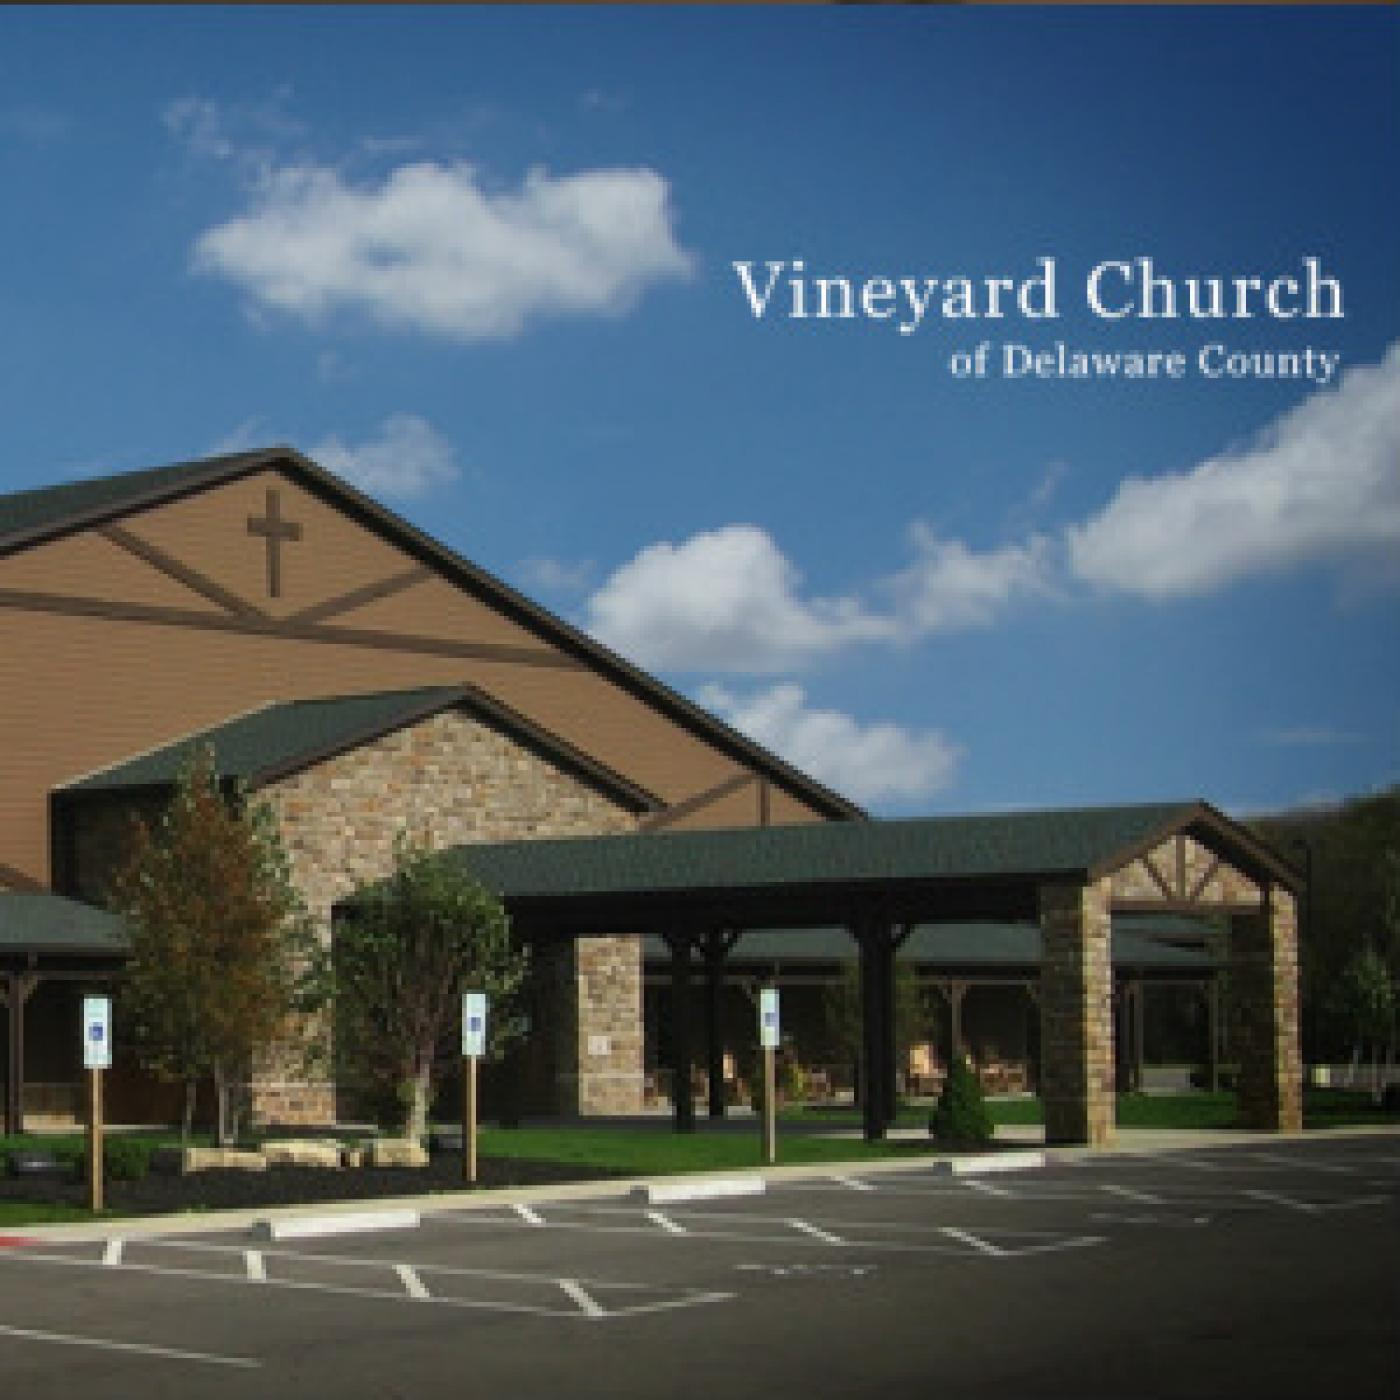 Vineyard Church Delaware County